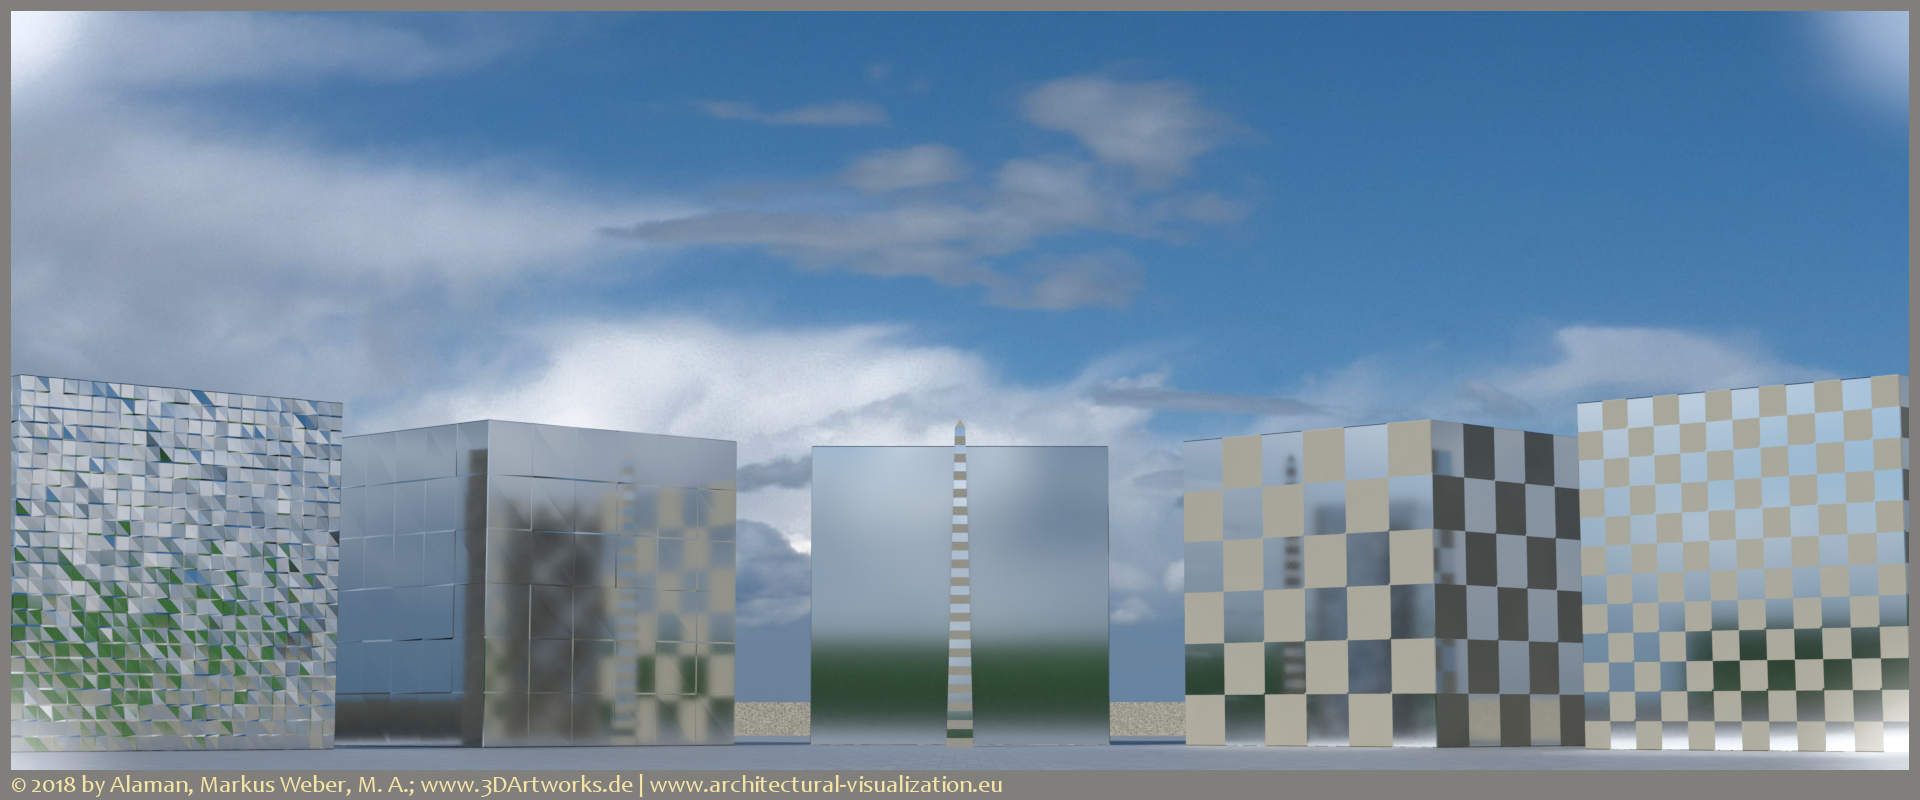 Architectural visualization: study on five blocks